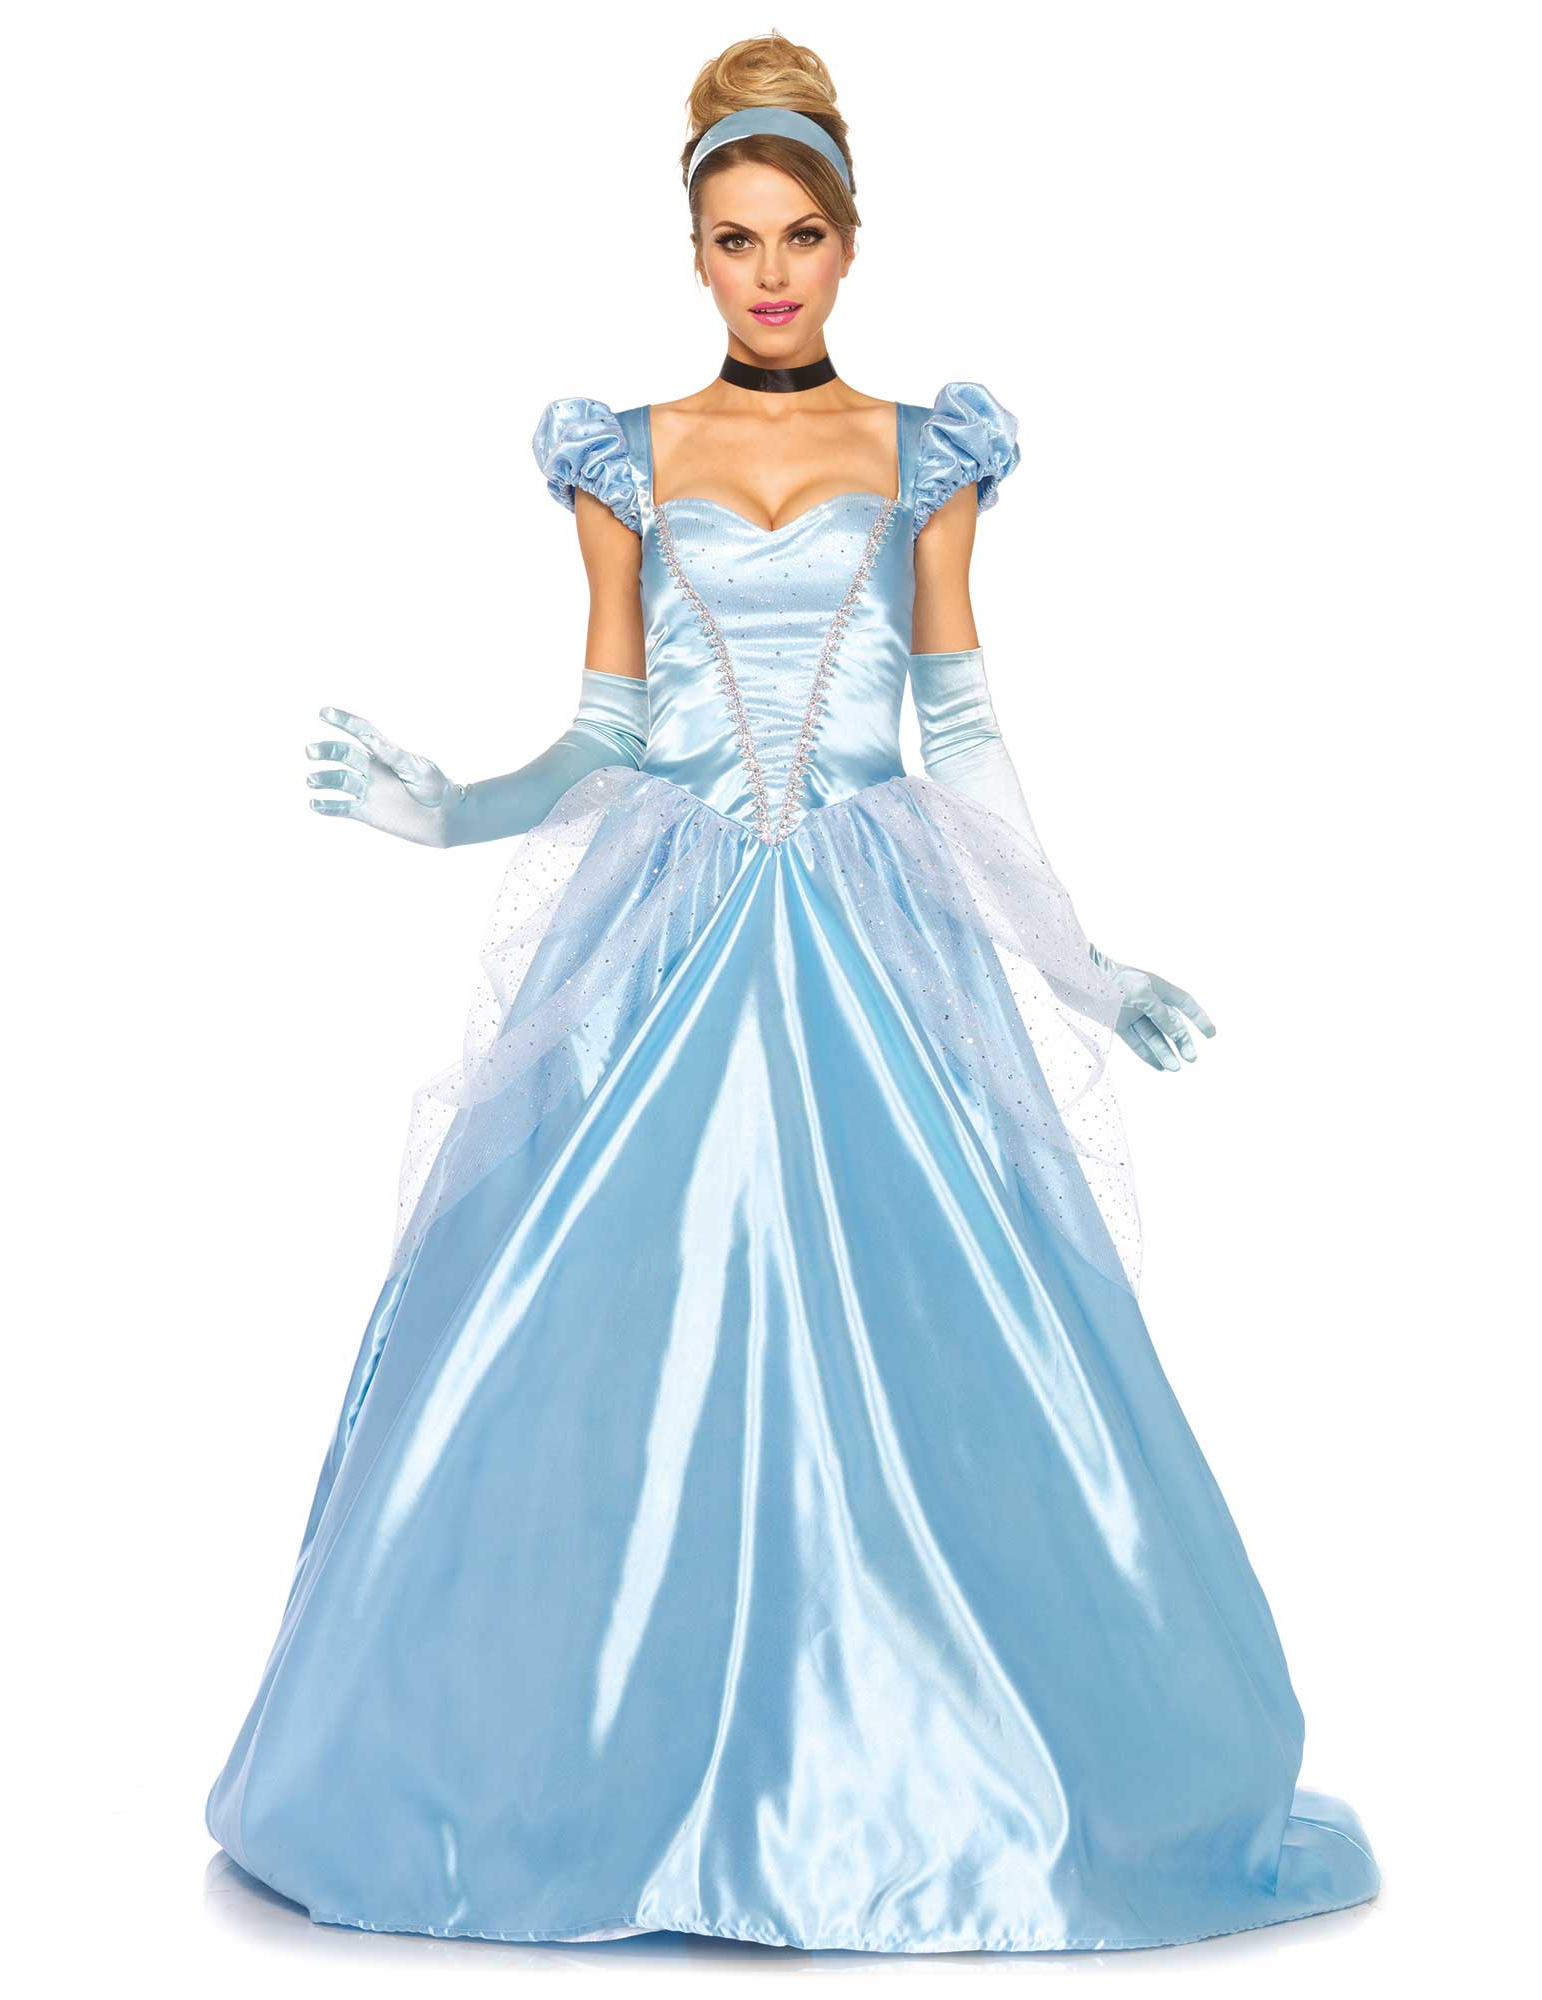 D guisement princesse robe bleue femme d coration anniversaire et f tes th me sur vegaoo party - Robe disney adulte ...